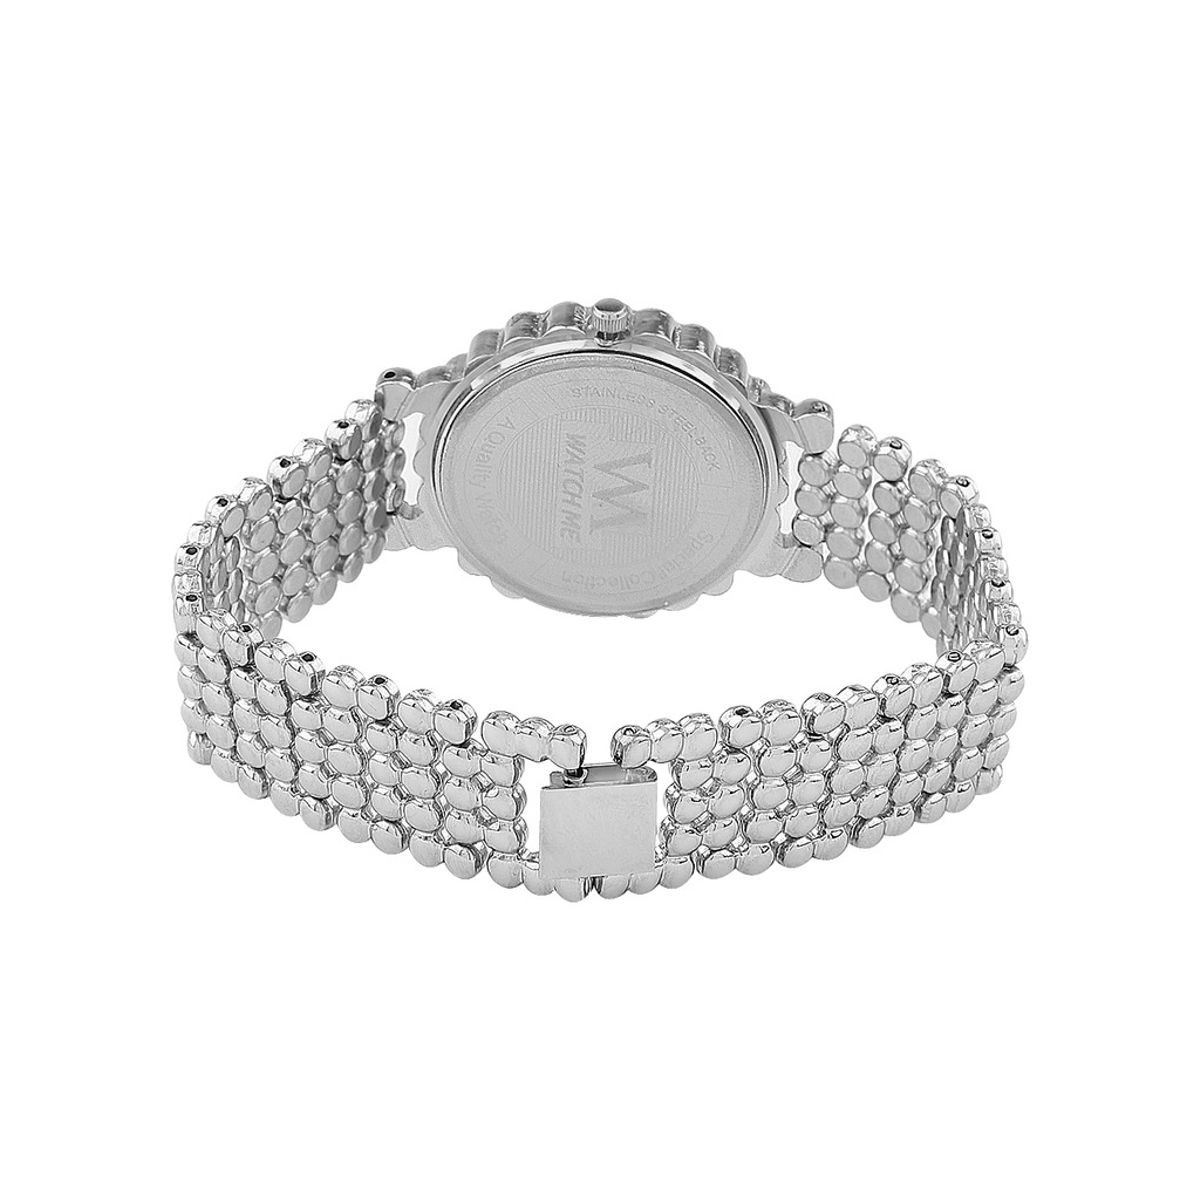 WATCH ME Silver Metal White Dial Watch For Women Watch MeAL-143